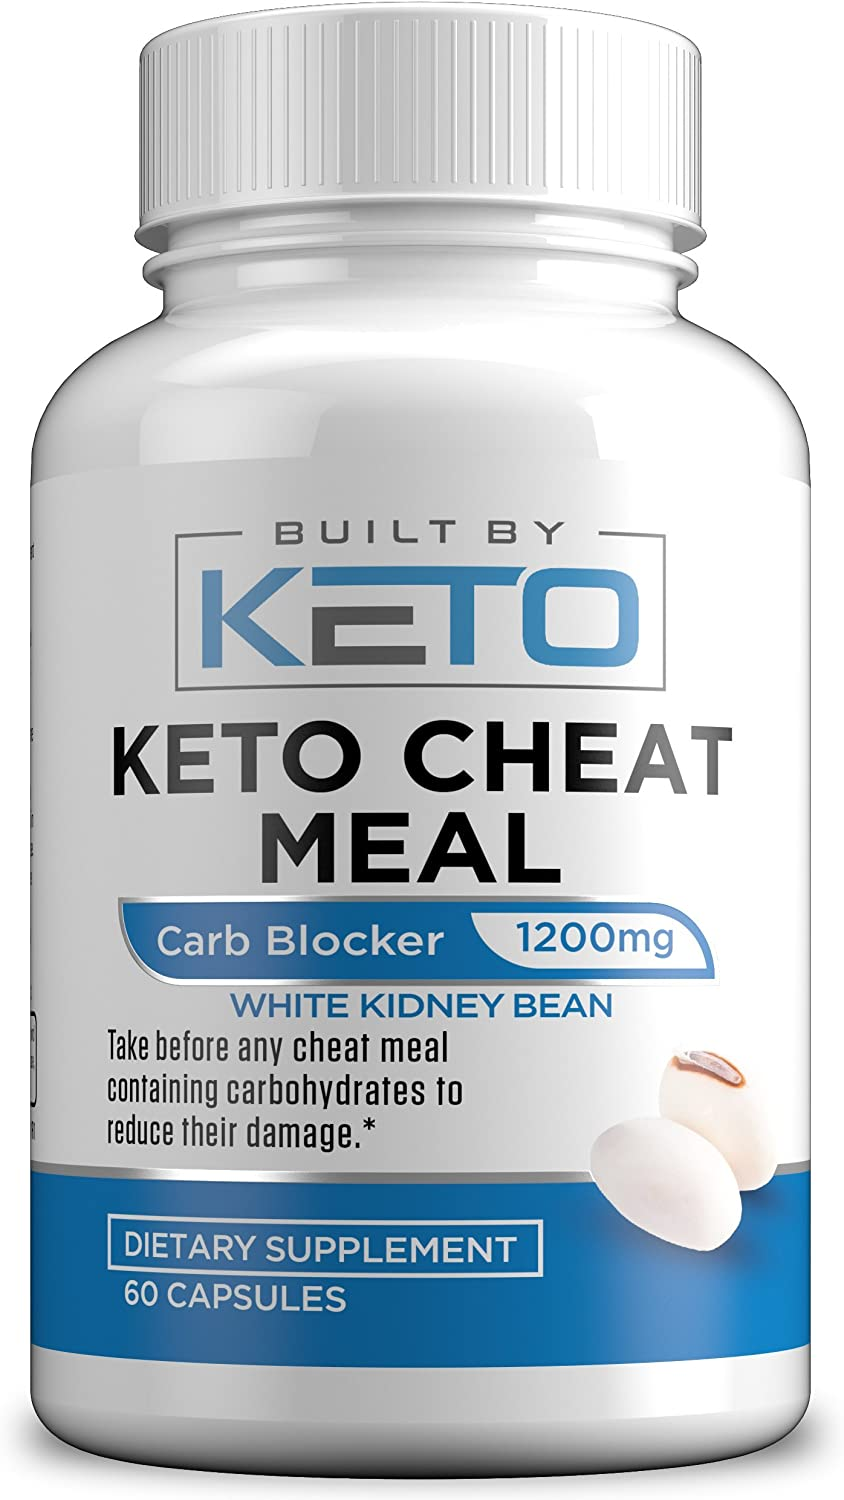 Amazon Com Carb Blocker 1200mg White Kidney Bean Extract Keto Cheat Meal Best Carb Starch Fat Blocker For The Ketogenic Diet Eat Carbs While On Keto 60 Capsules